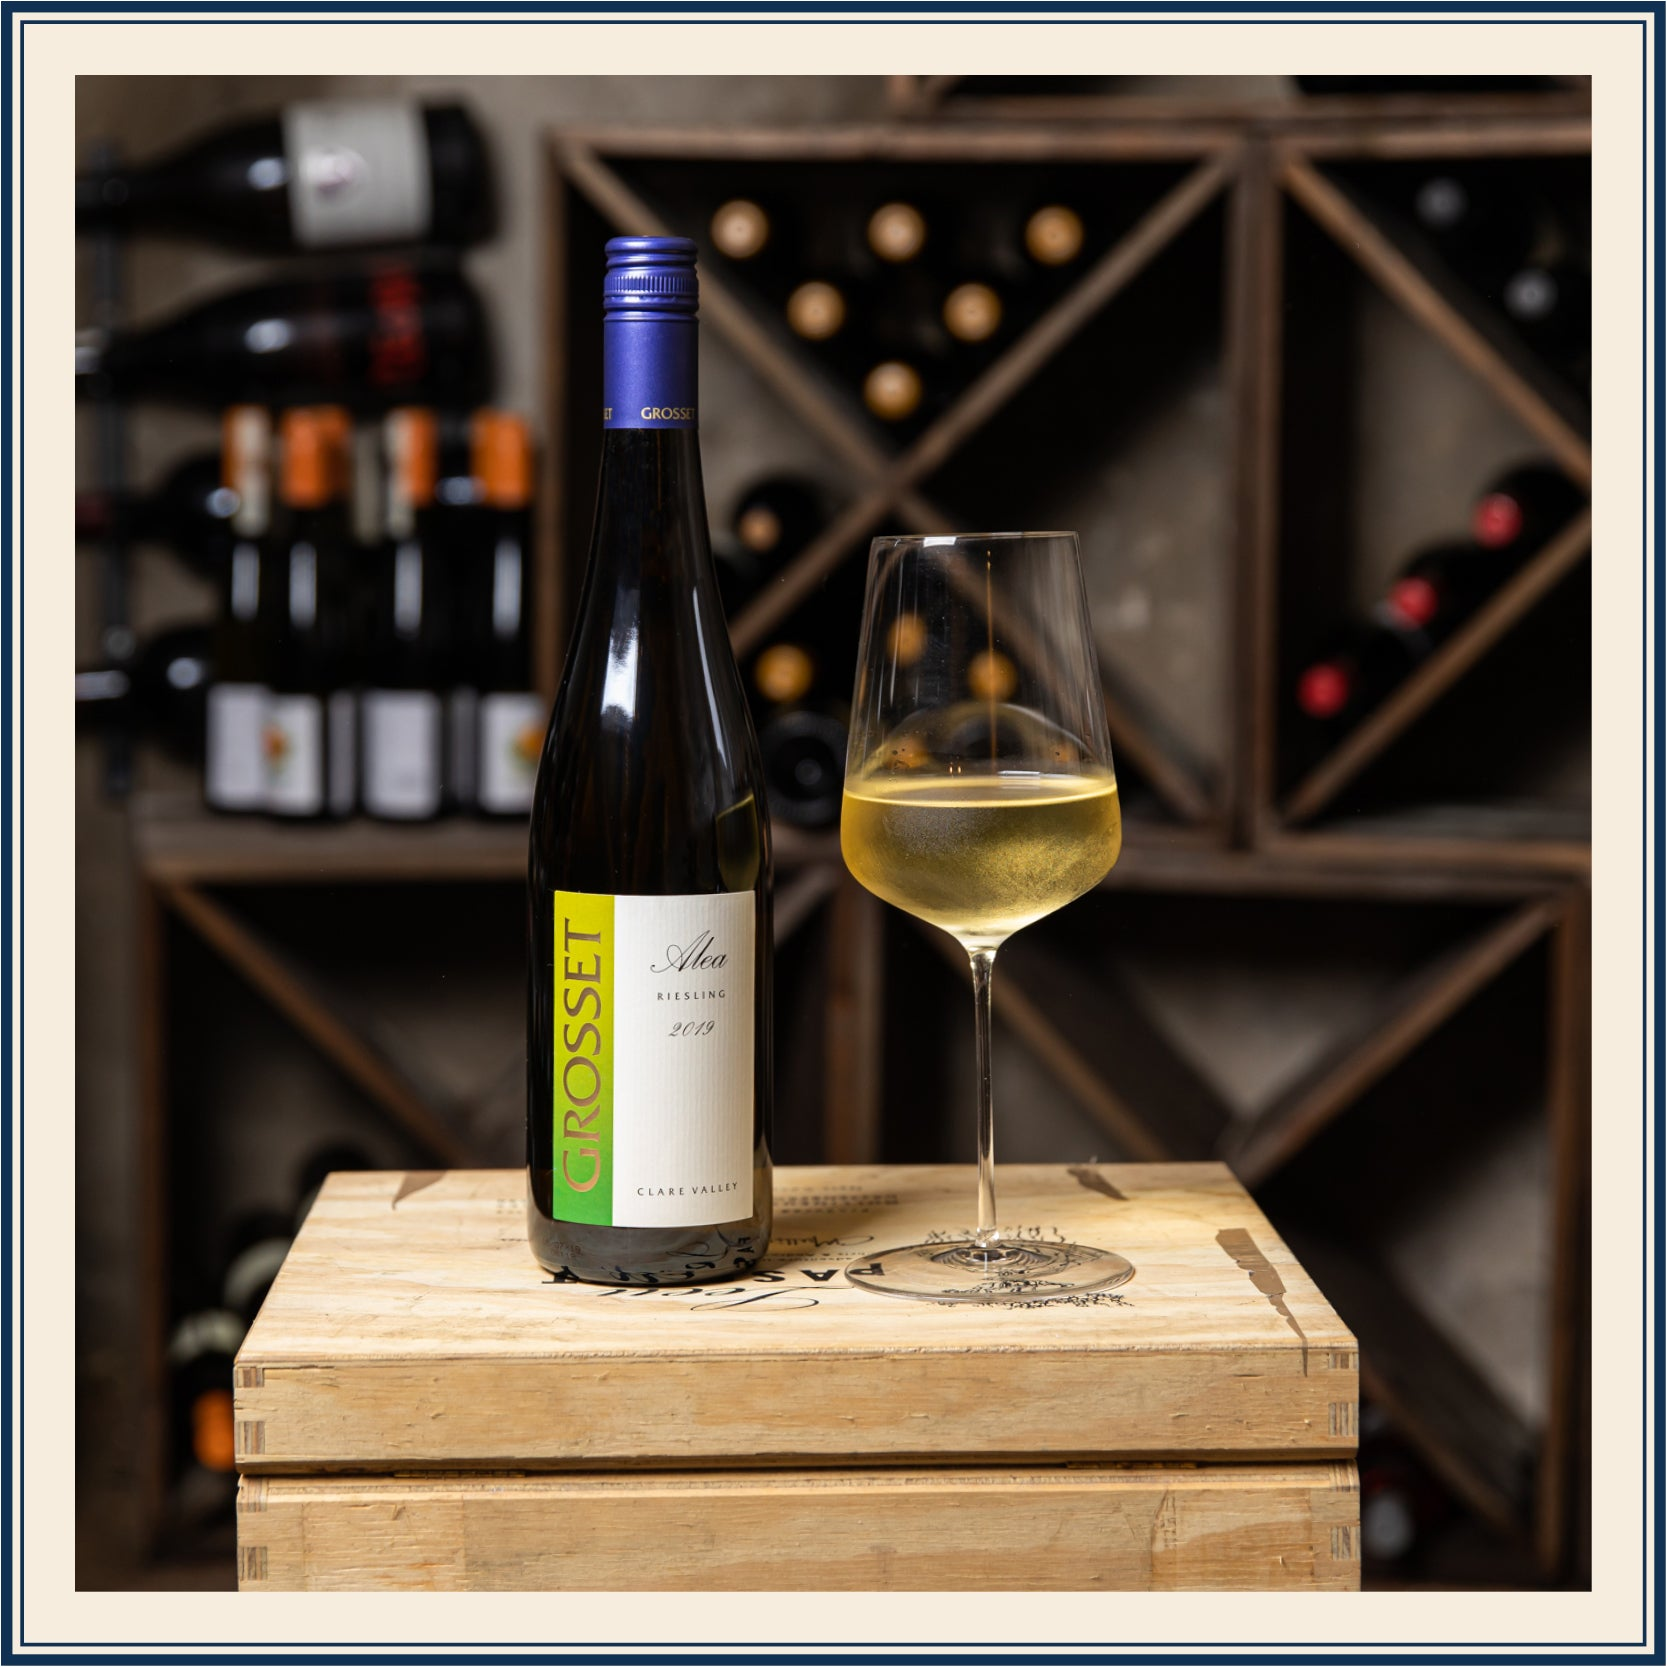 2018 RIESLING, ALEA, GROSSET, CLARE VALLEY, AUSTRALIA